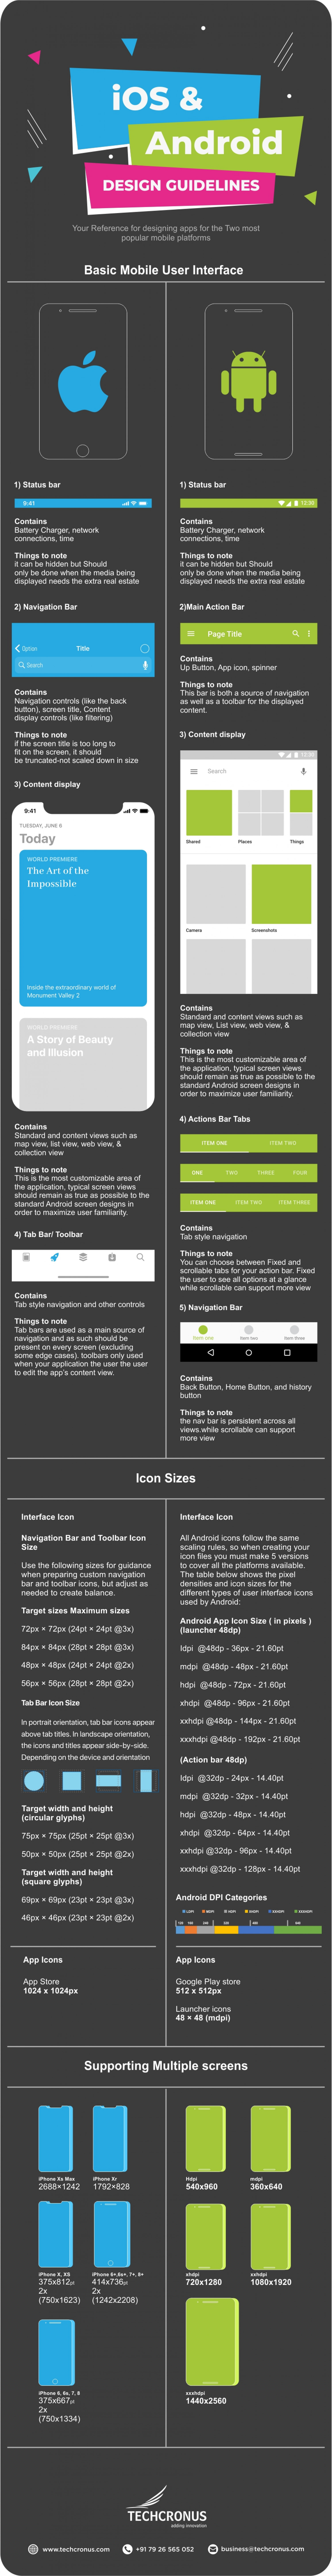 Why Design Is The Most Important Factors In A Mobile App Development/iOS & Android Design Guidelines Infographic